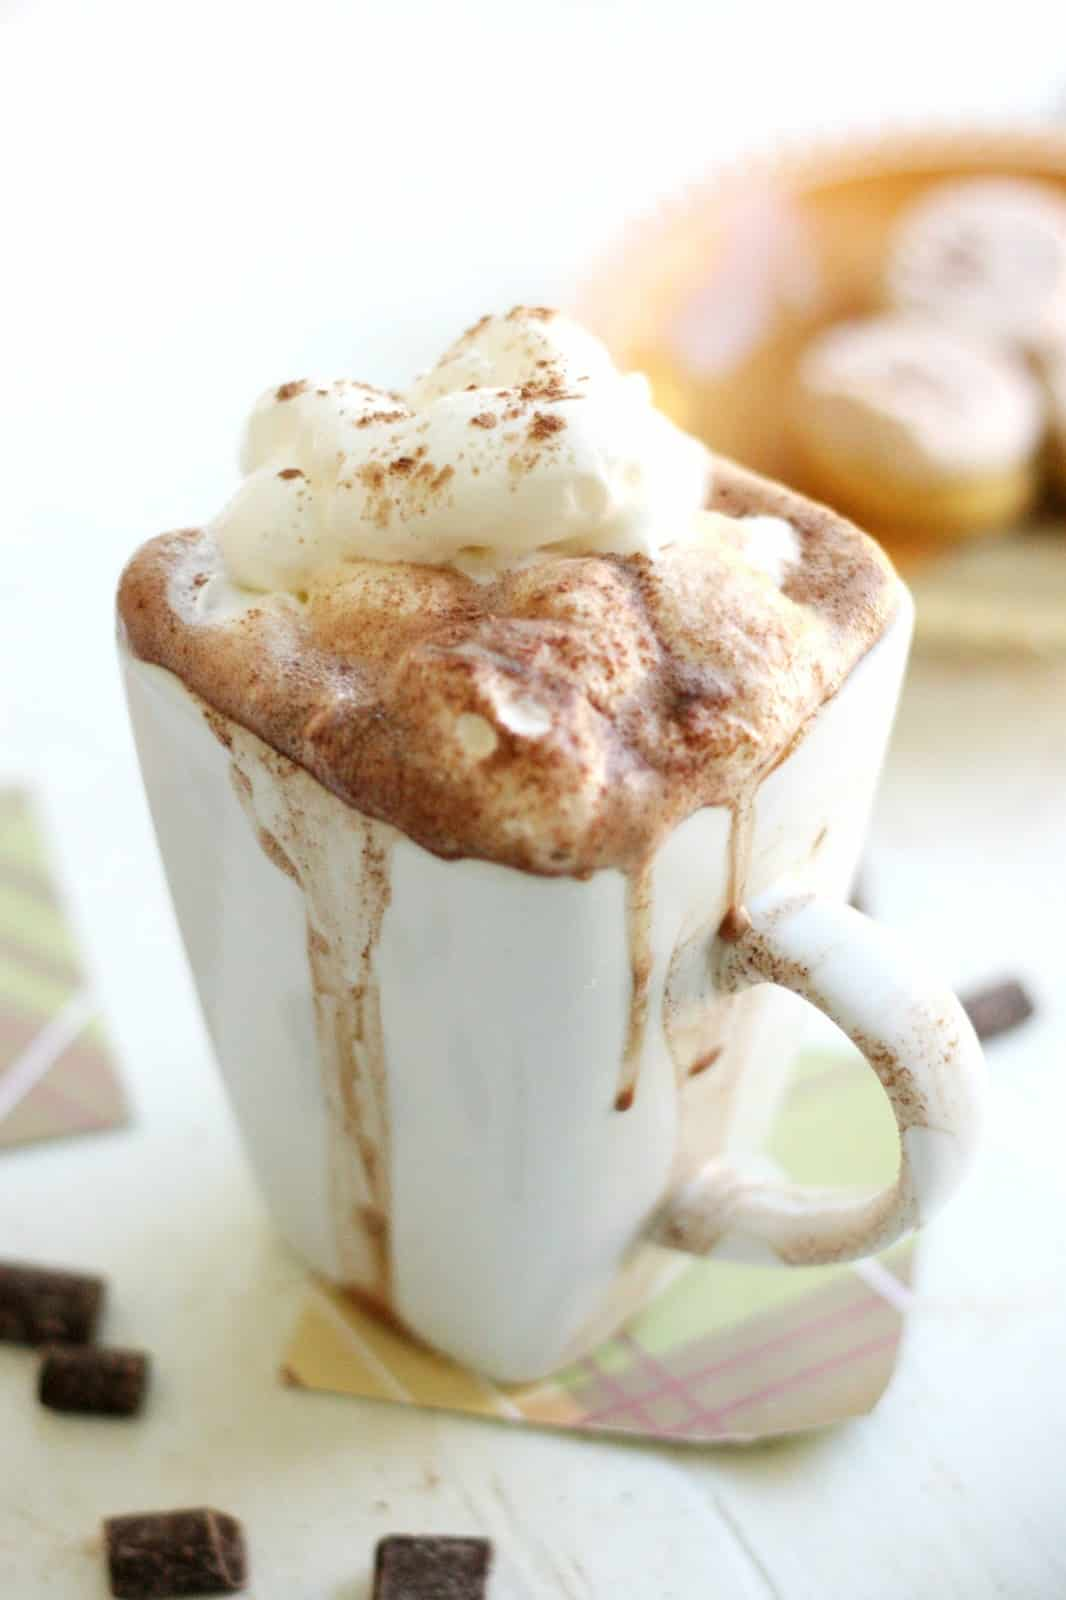 This delicious hot chocolate recipe is so creamy and rich that it will put the hot cocoa packets in your cupboard to shame.